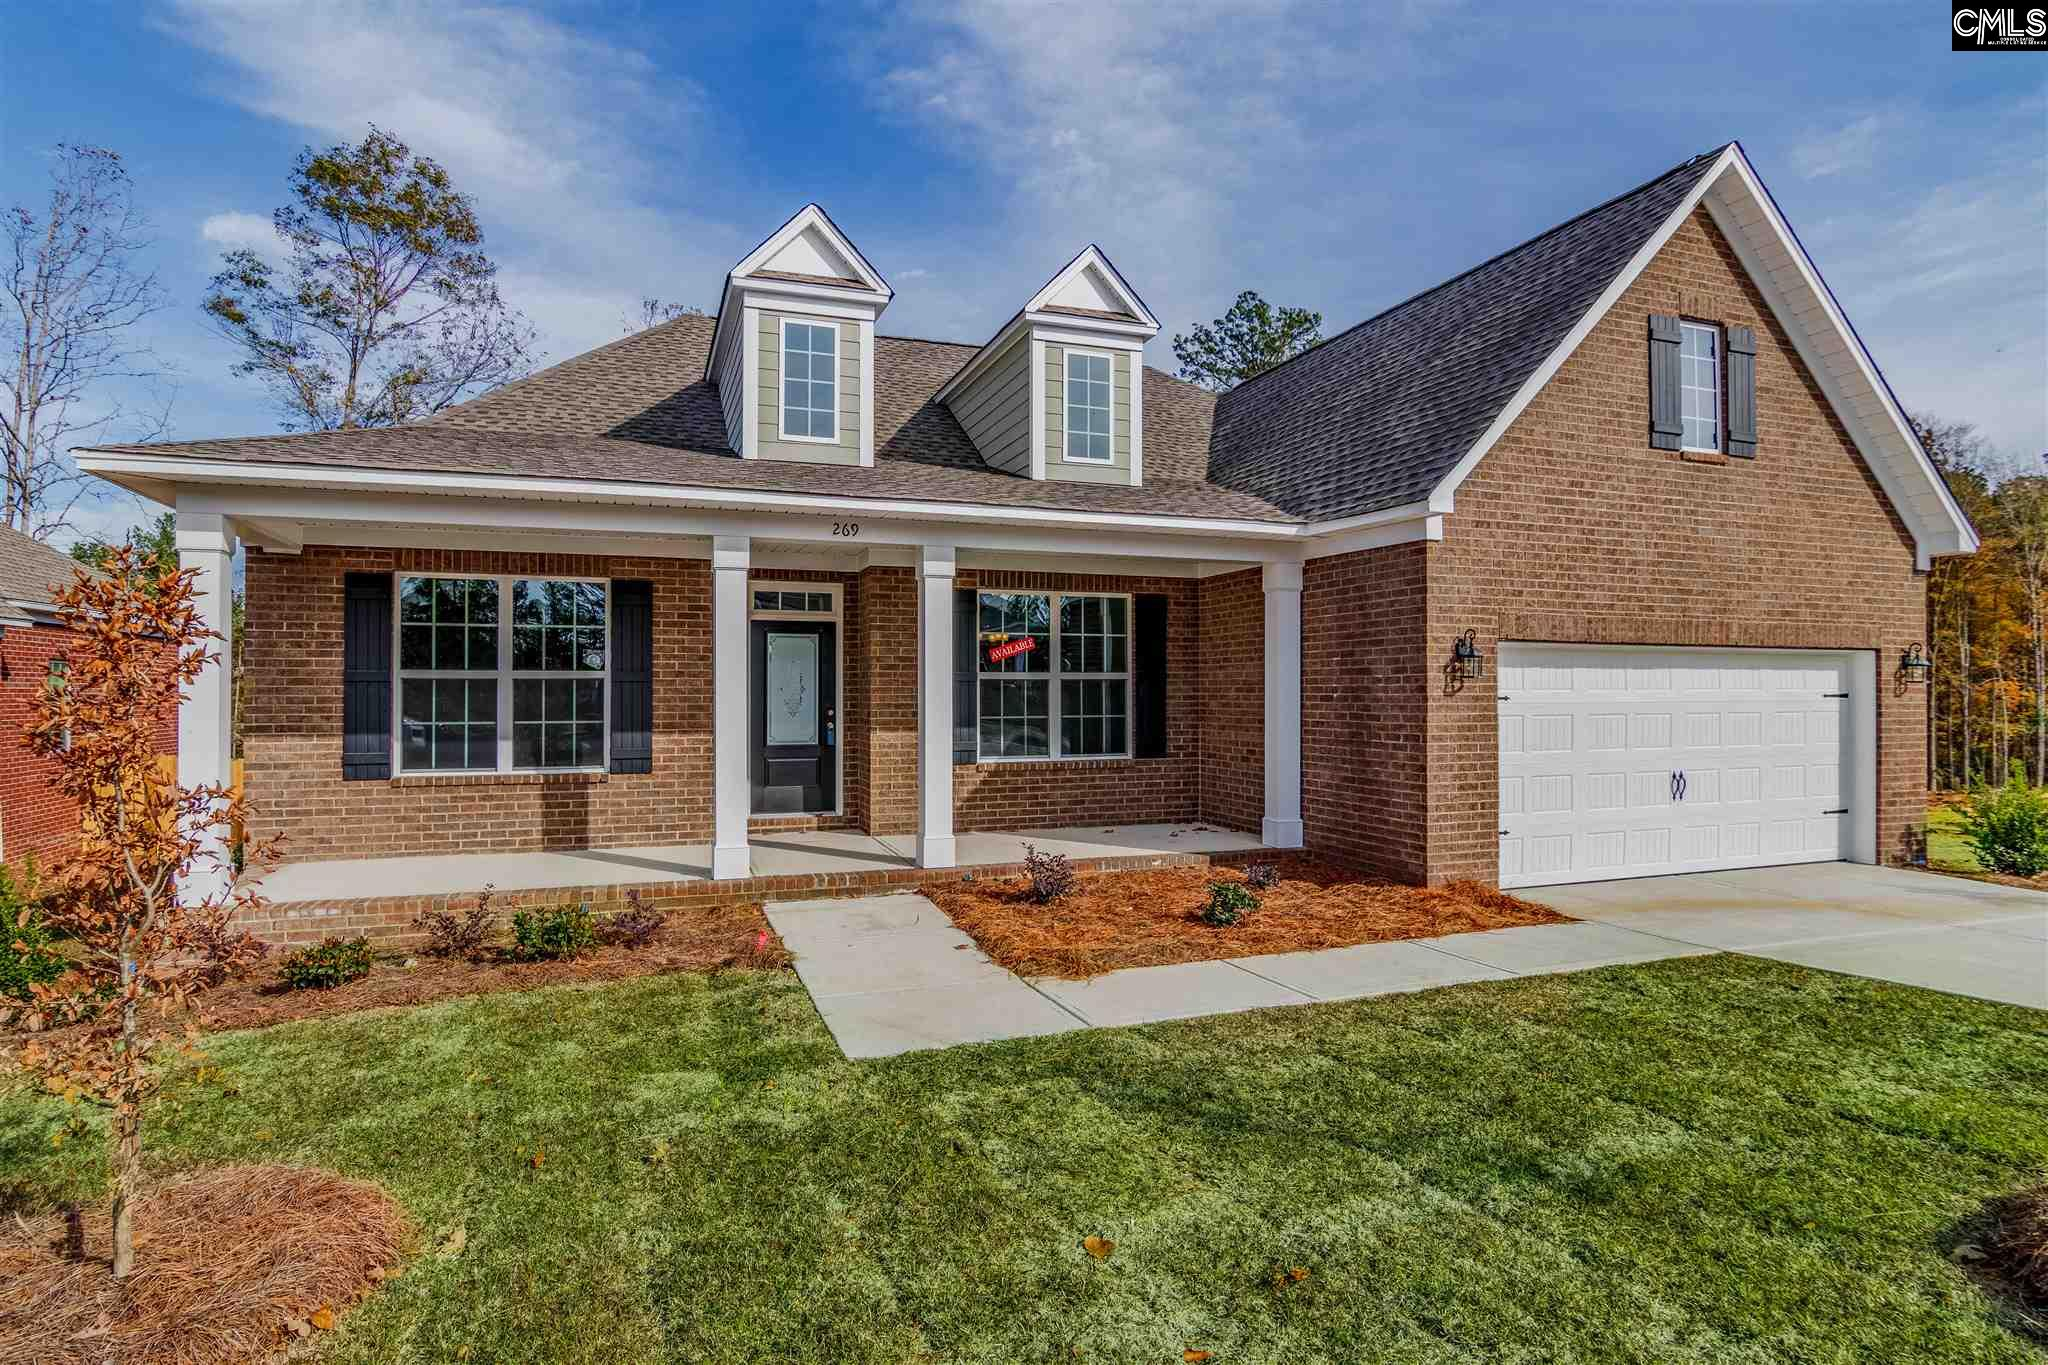 269 Cedar Hollow Irmo, SC 29063